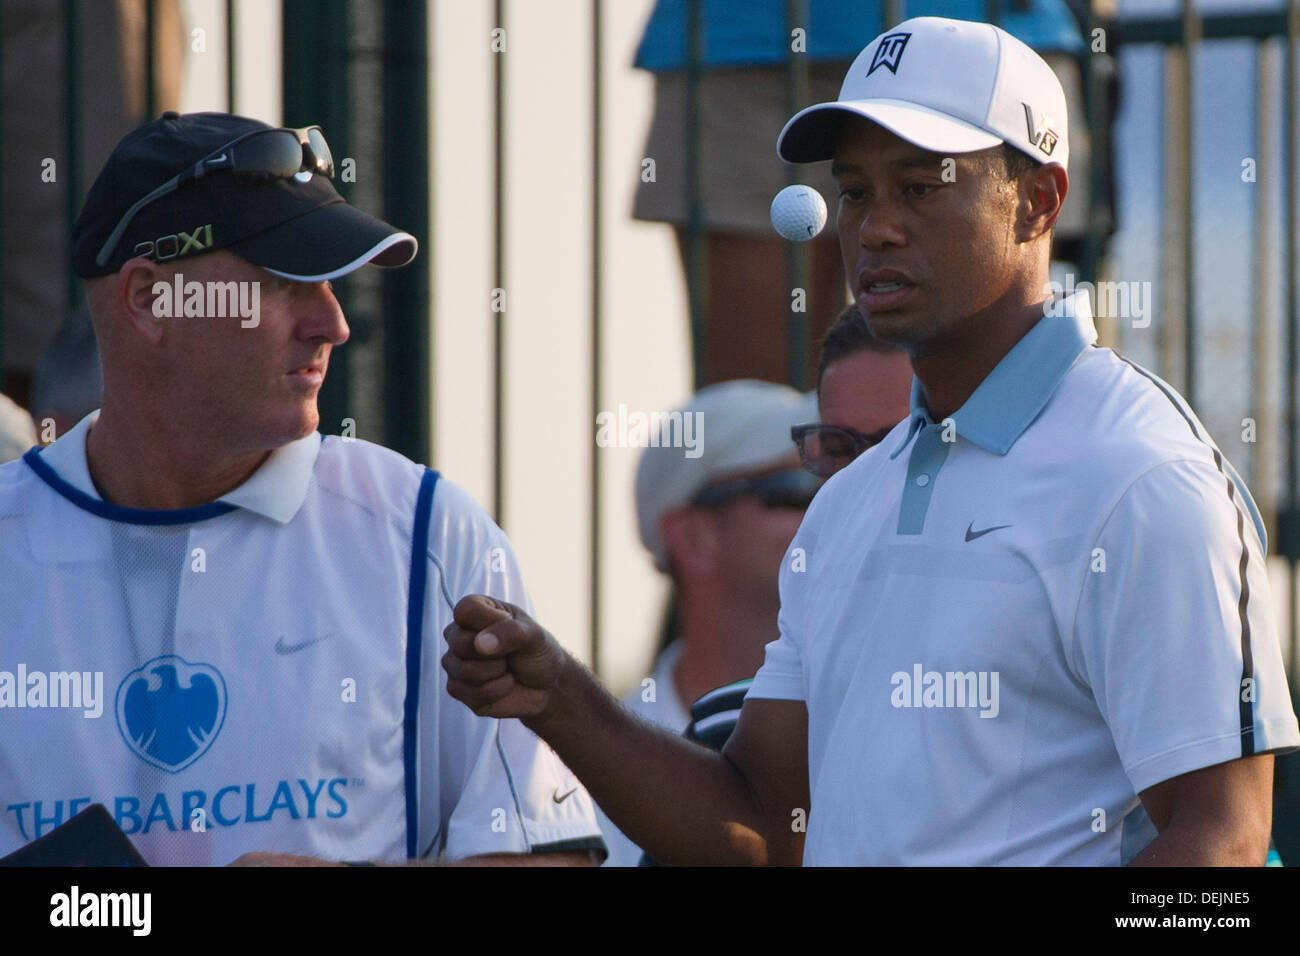 Aug. 21, 2013 - Jersey City, New Jersey, U.S - August 21, 2013: Tiger Woods (USA) watches the ball after he flips Stock Photo